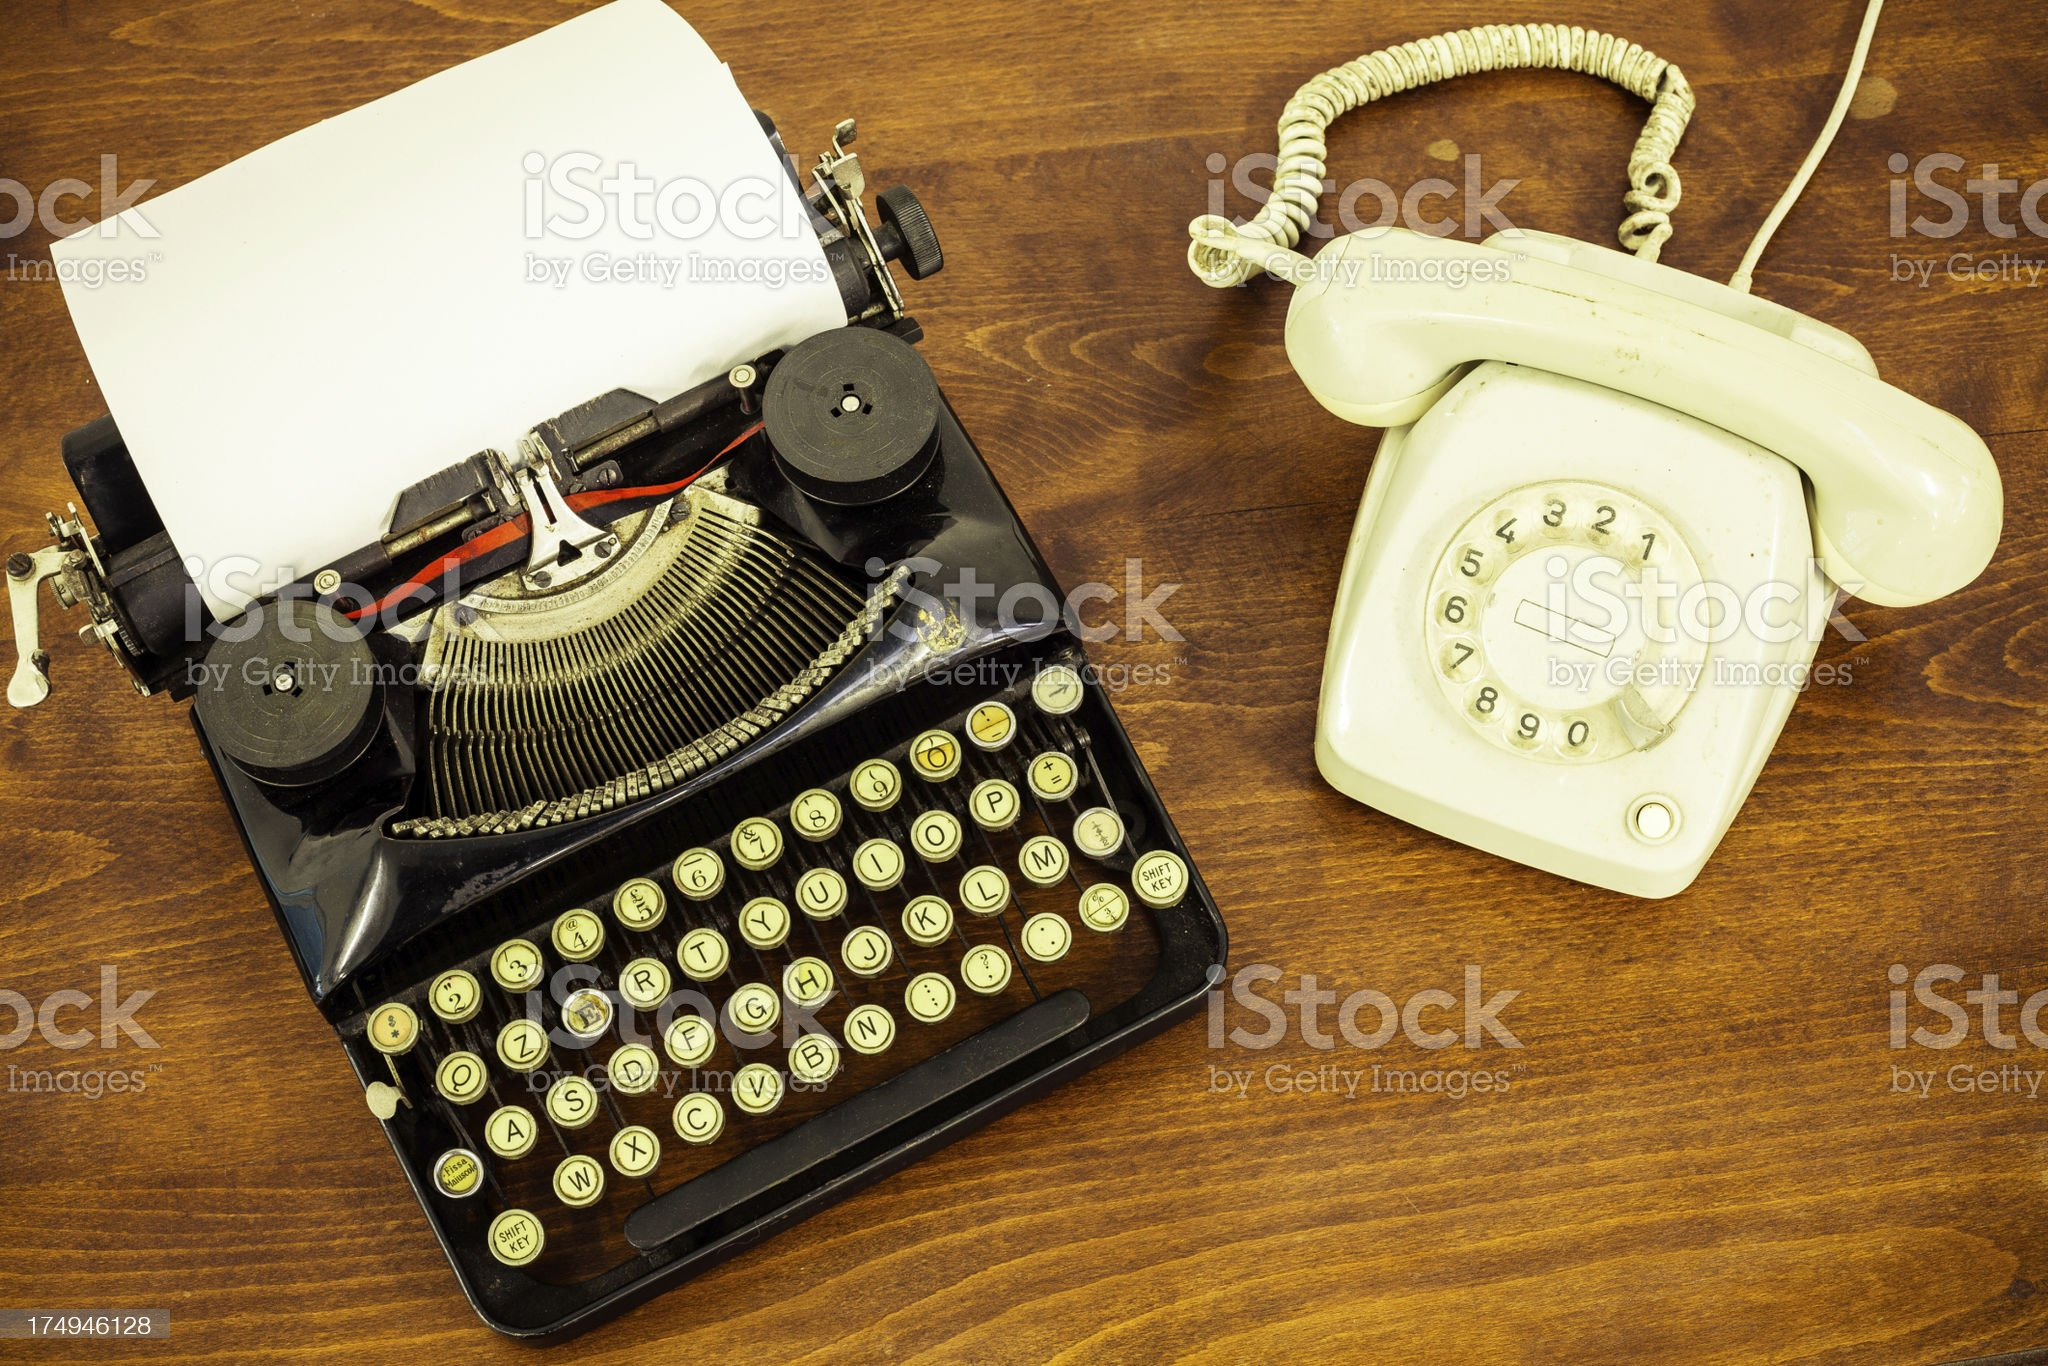 Vintage Typewriter with Old Telephone on Wooden Table royalty-free stock photo